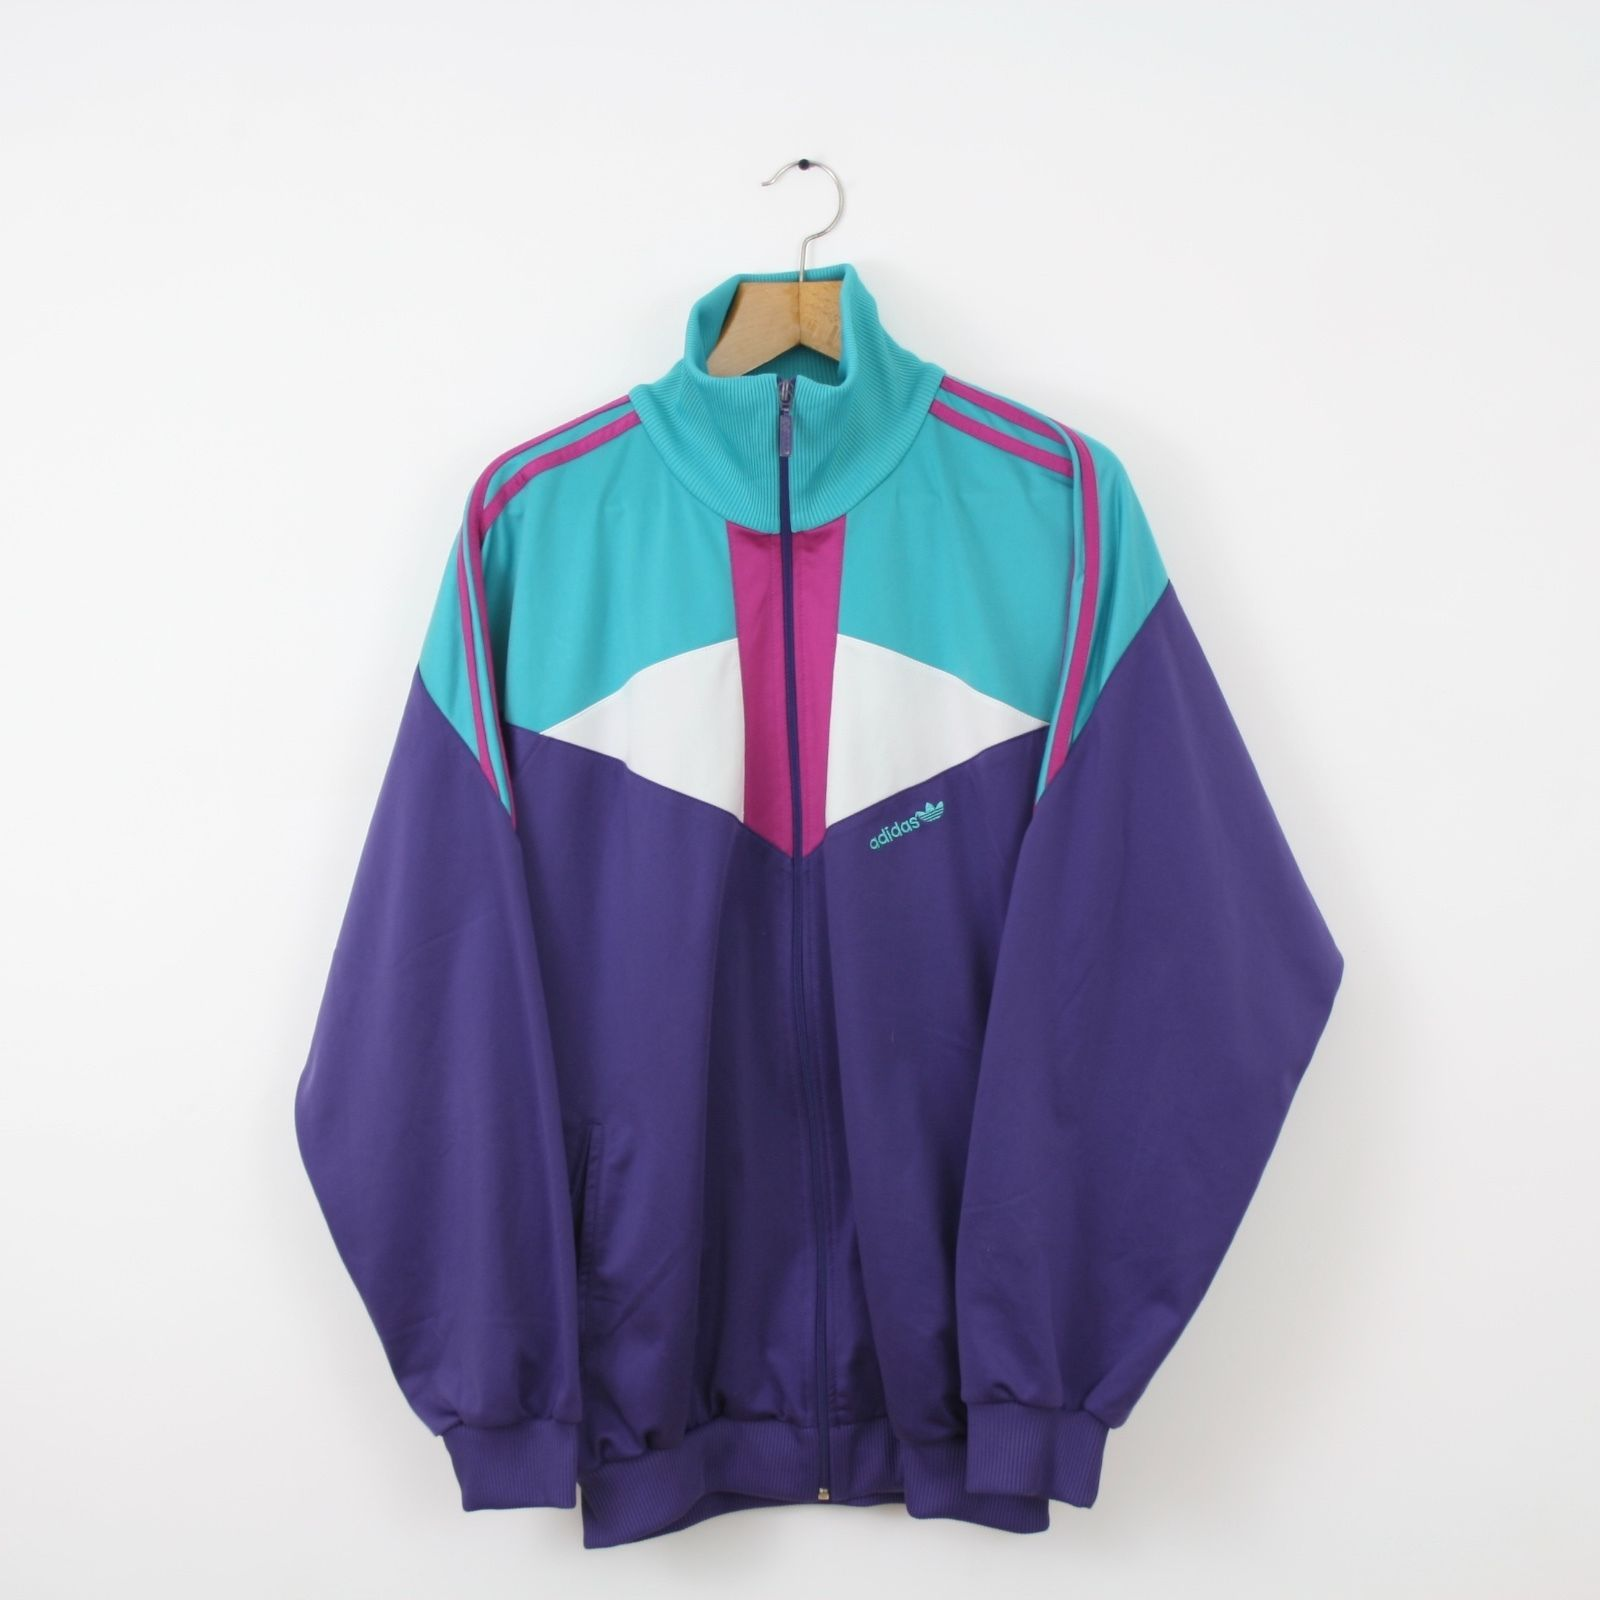 be1dea579a3b Vintage ADIDAS 80s 90s Purple Green Tracksuit Top Jacket